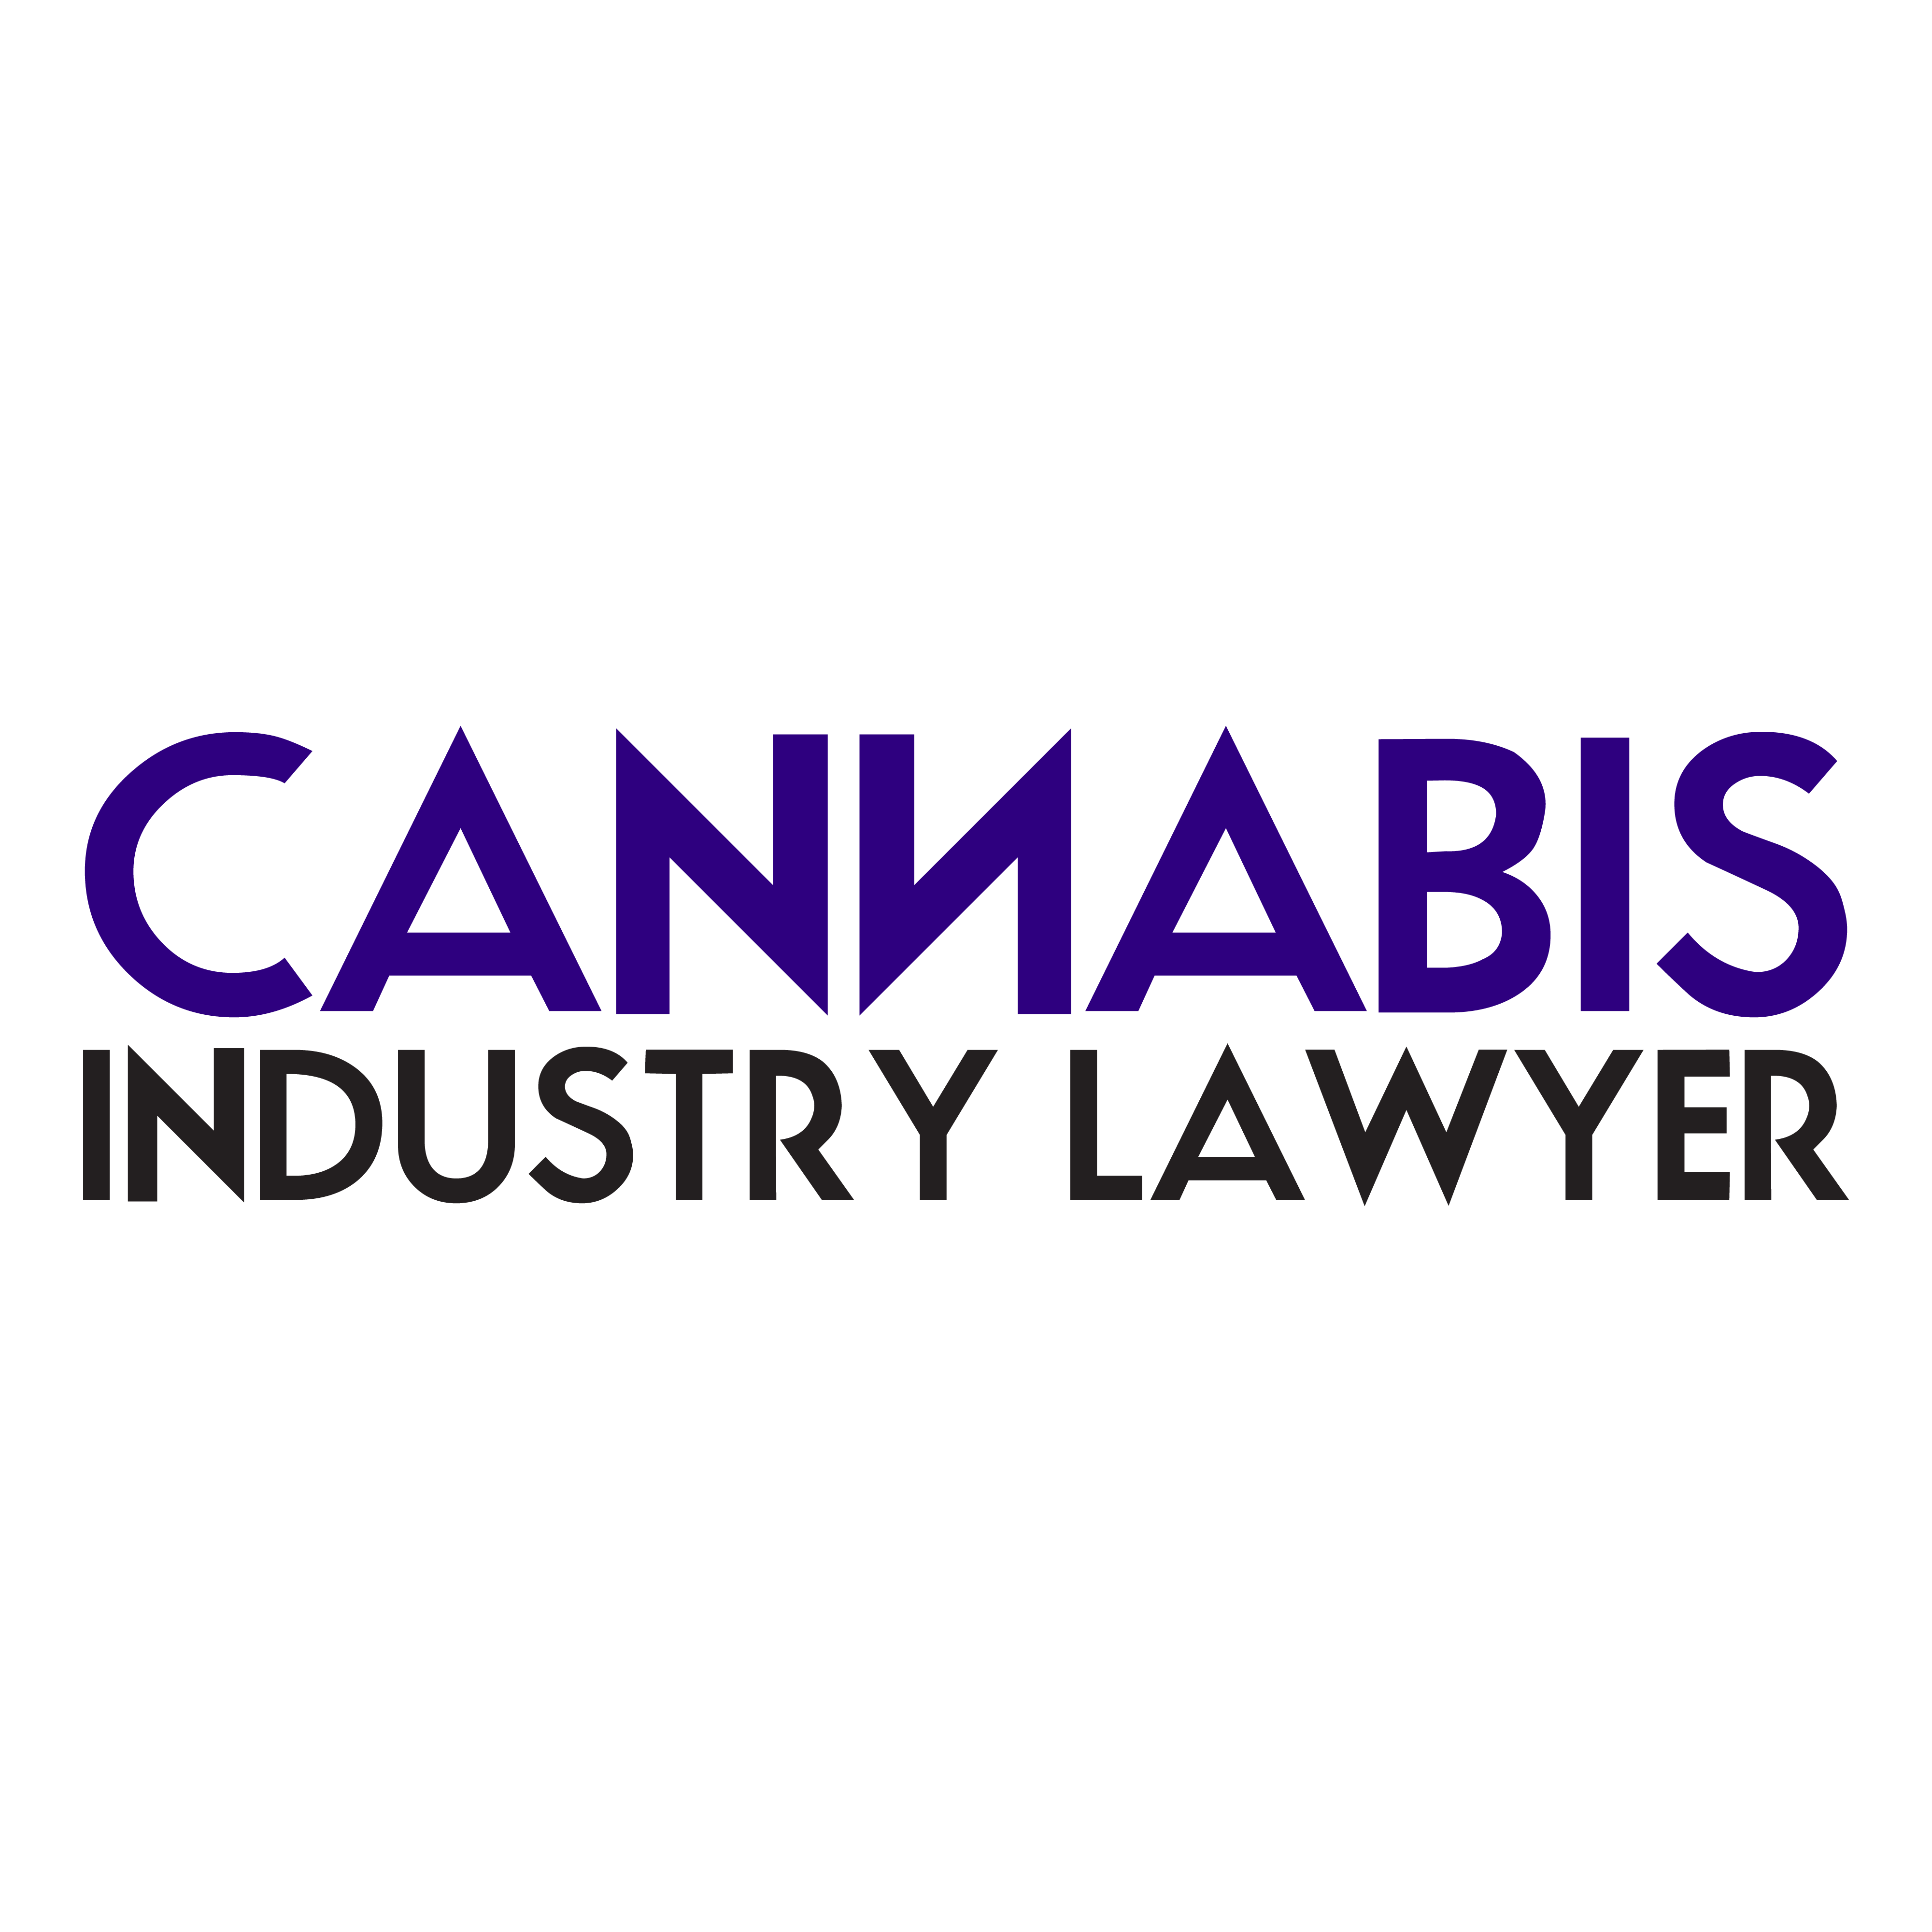 Cannabis Industry Lawyer